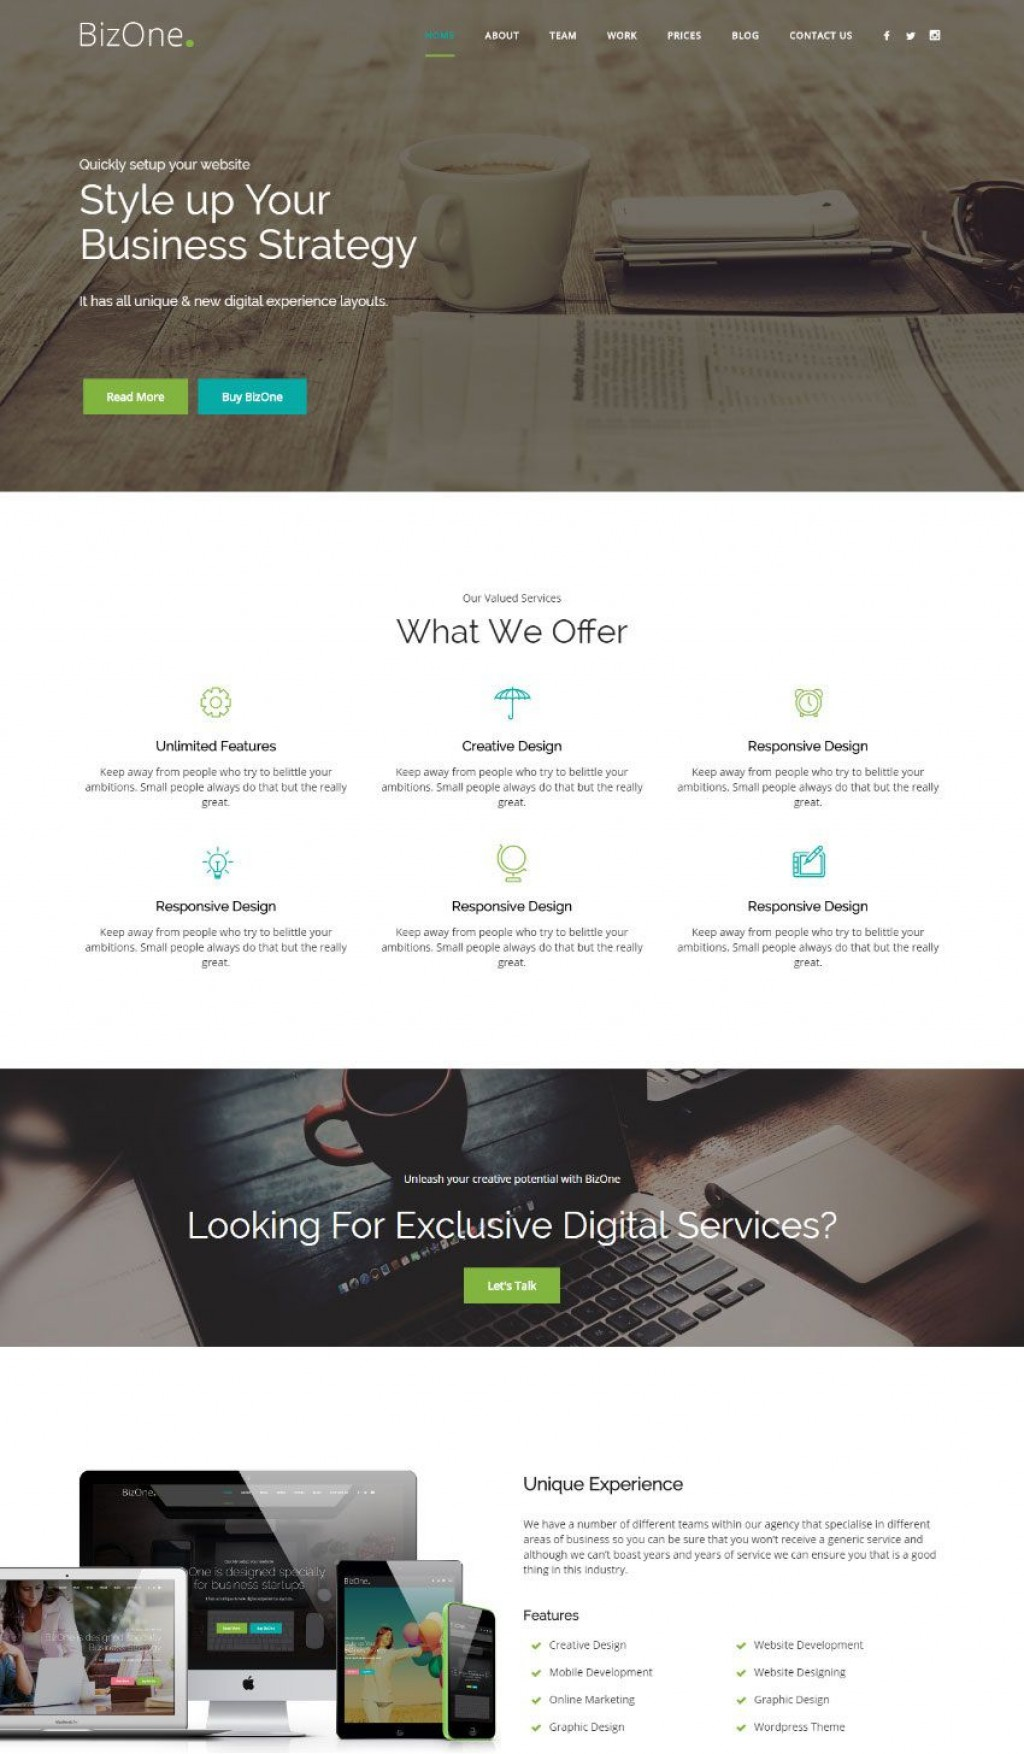 001 Stirring Single Page Web Template Image  Templates One Website Free Download Html5 BootstrapLarge